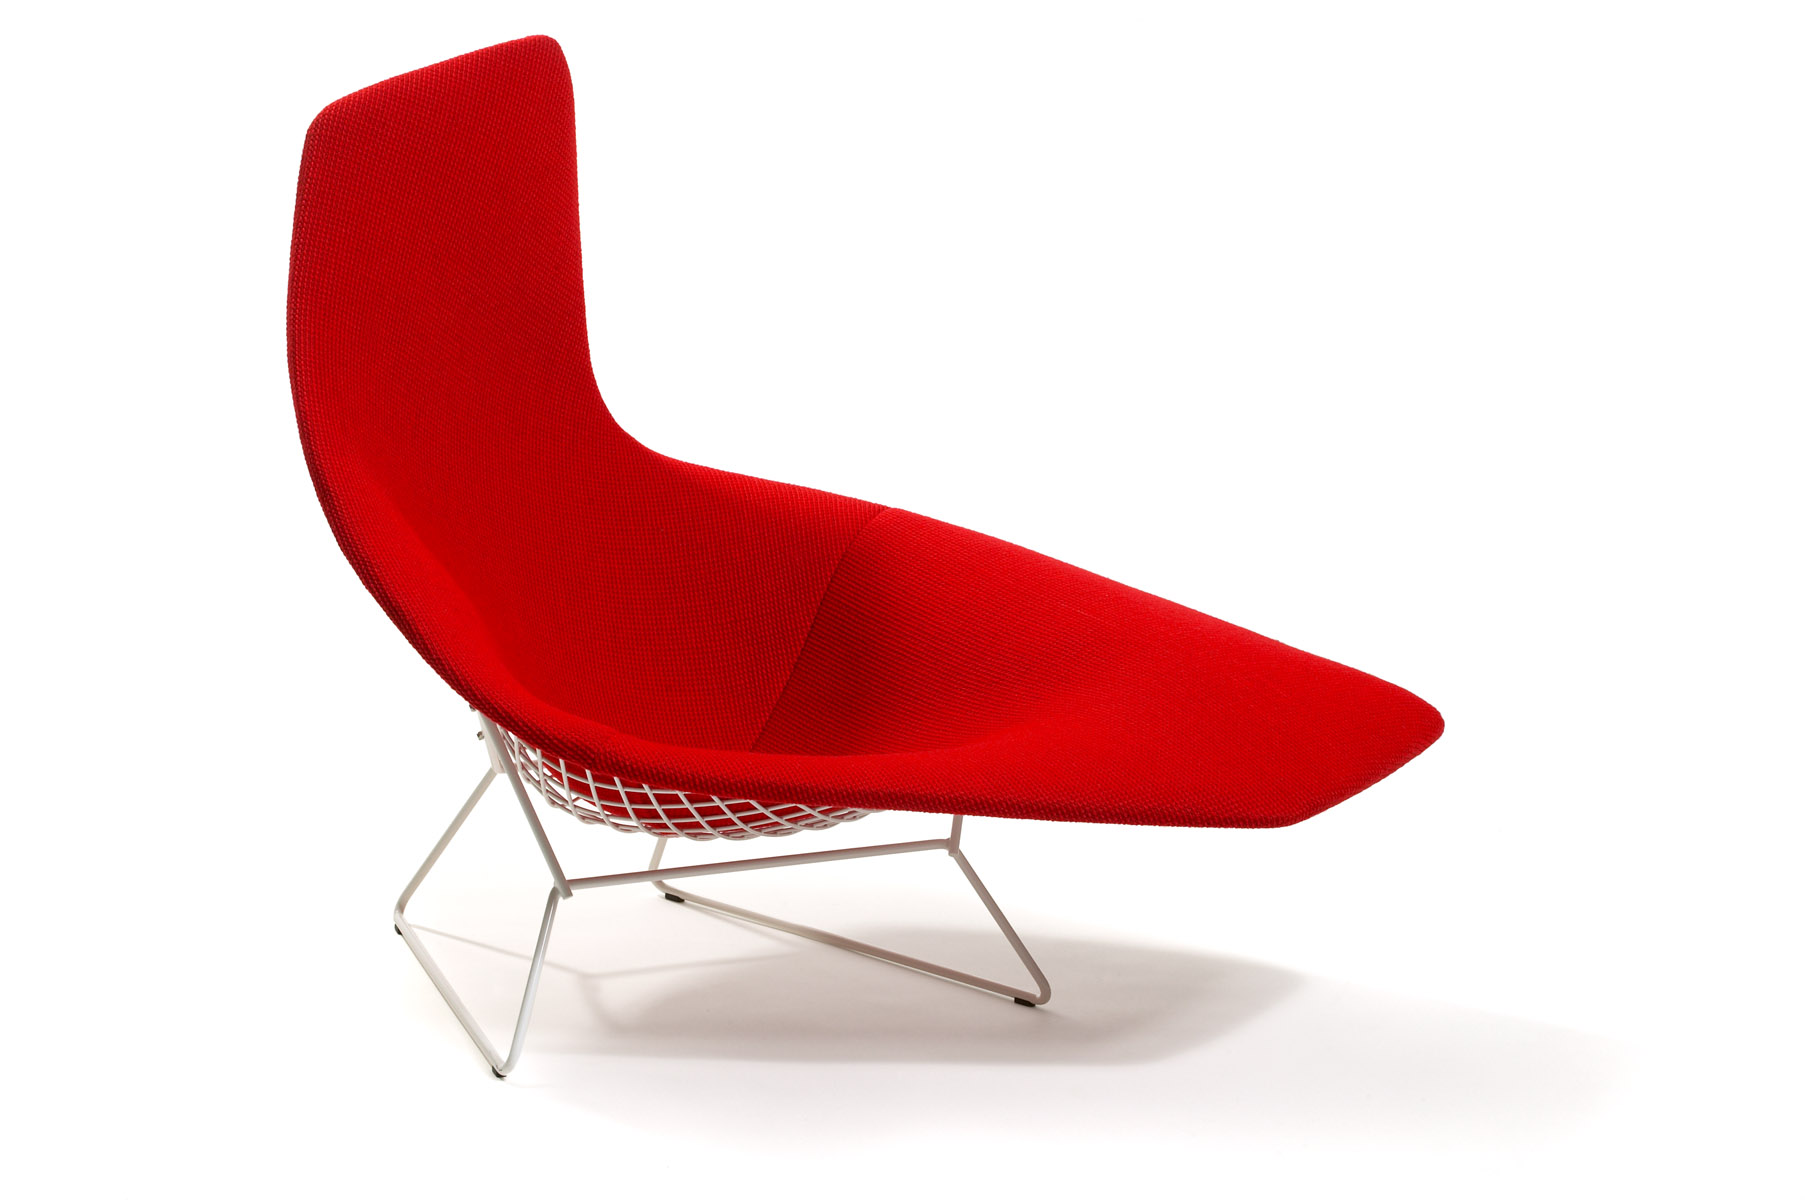 asymmetric chaise designed by harry bertoia